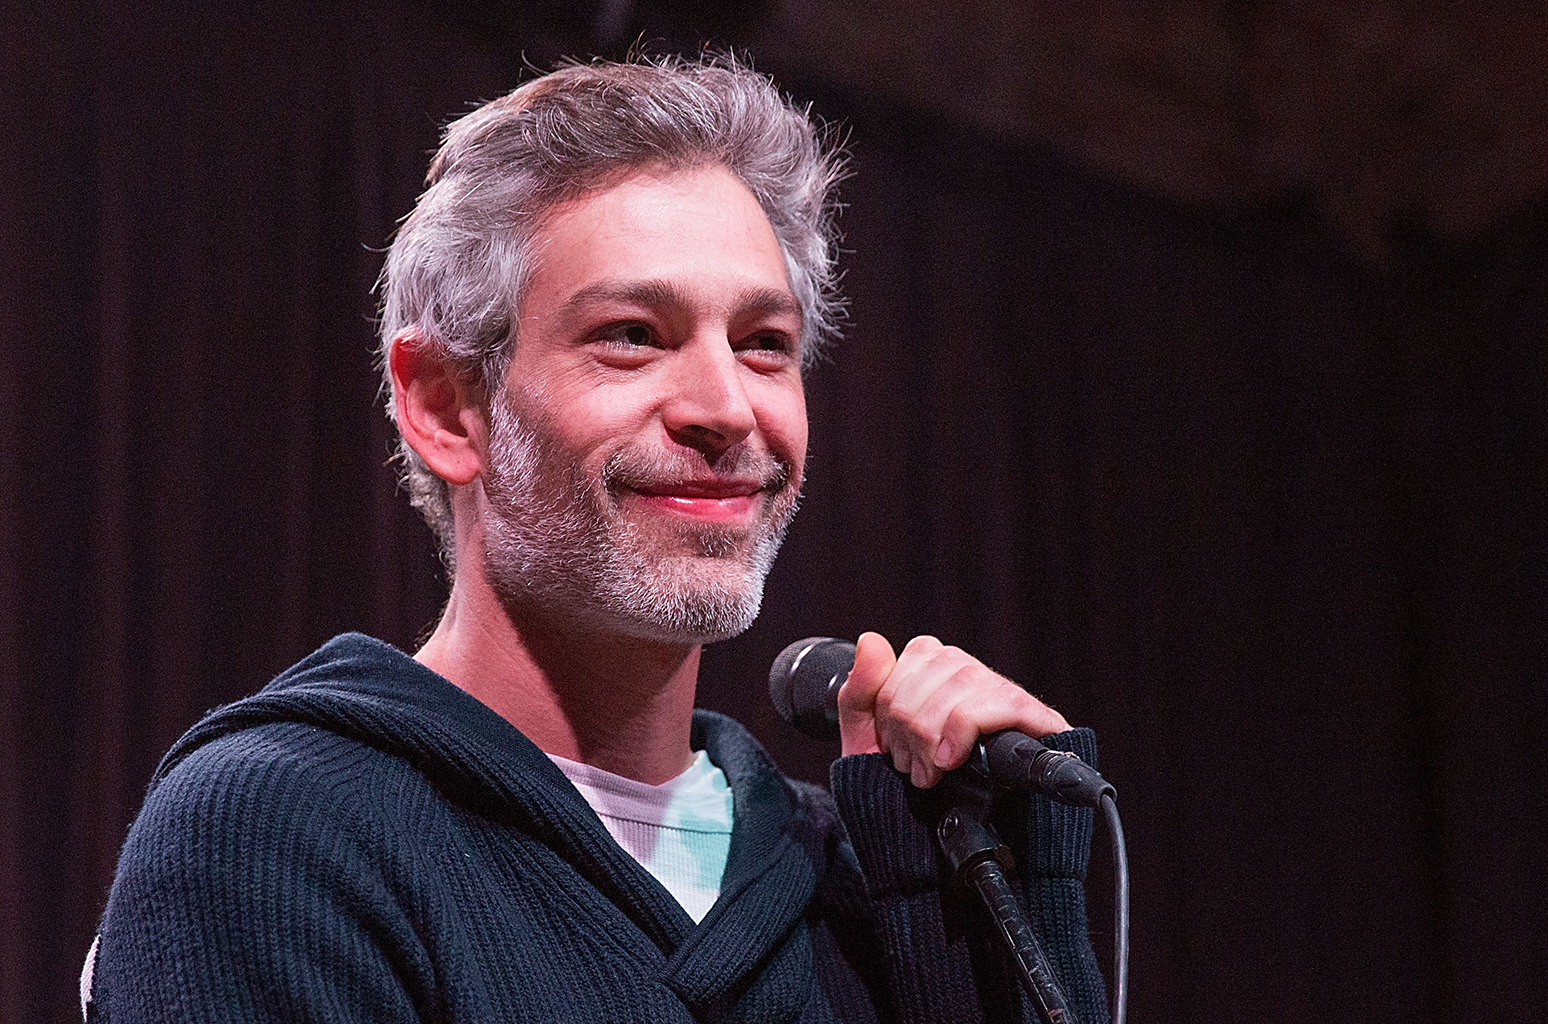 Matisyahu Performs At Stubb's